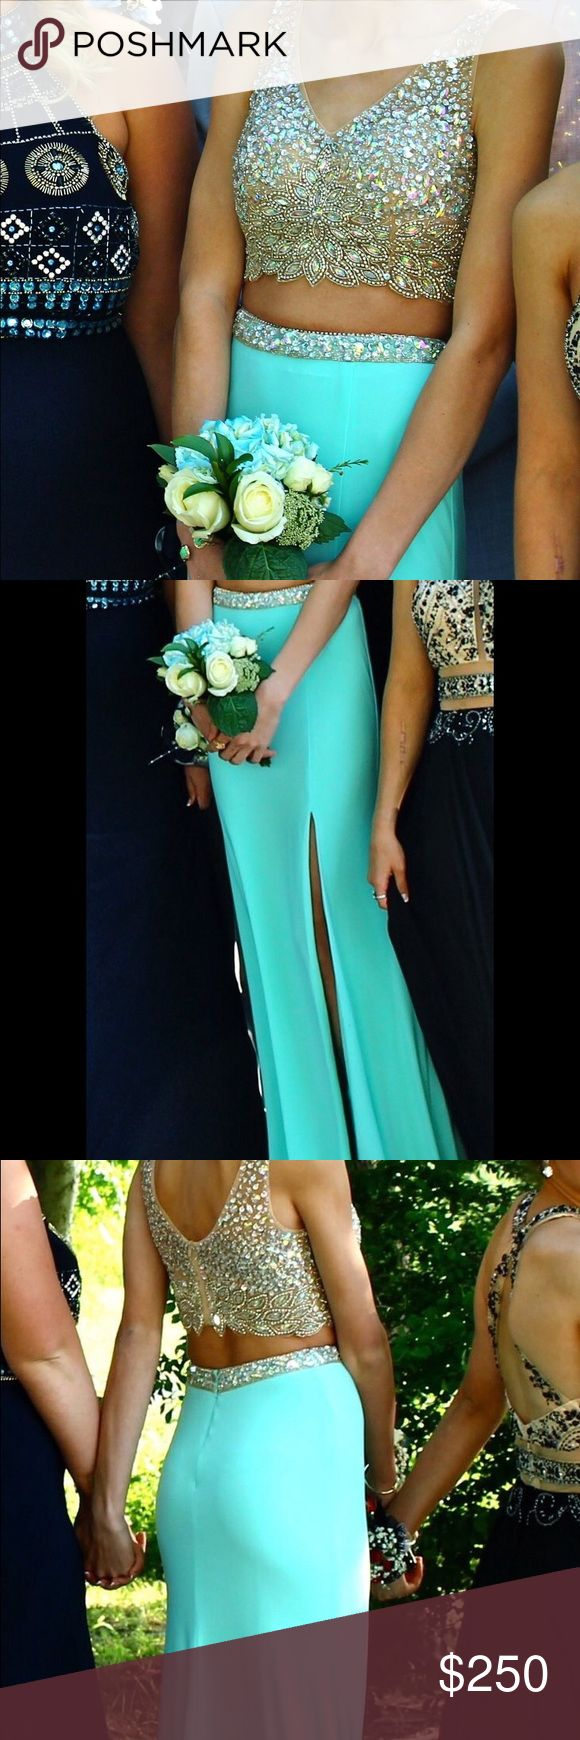 Turquoise Two-Piece Prom Dress with Beaded Top Hello! I am selling my Two-piece turquoise prom dress with a beaded top! It has a slit in the side and a small train. I am 5'7 and I wore 3' heels with this dress. It has only been worn once and is still in excellent shape. THIS IS A SIZE 3 DRESS Dresses Prom